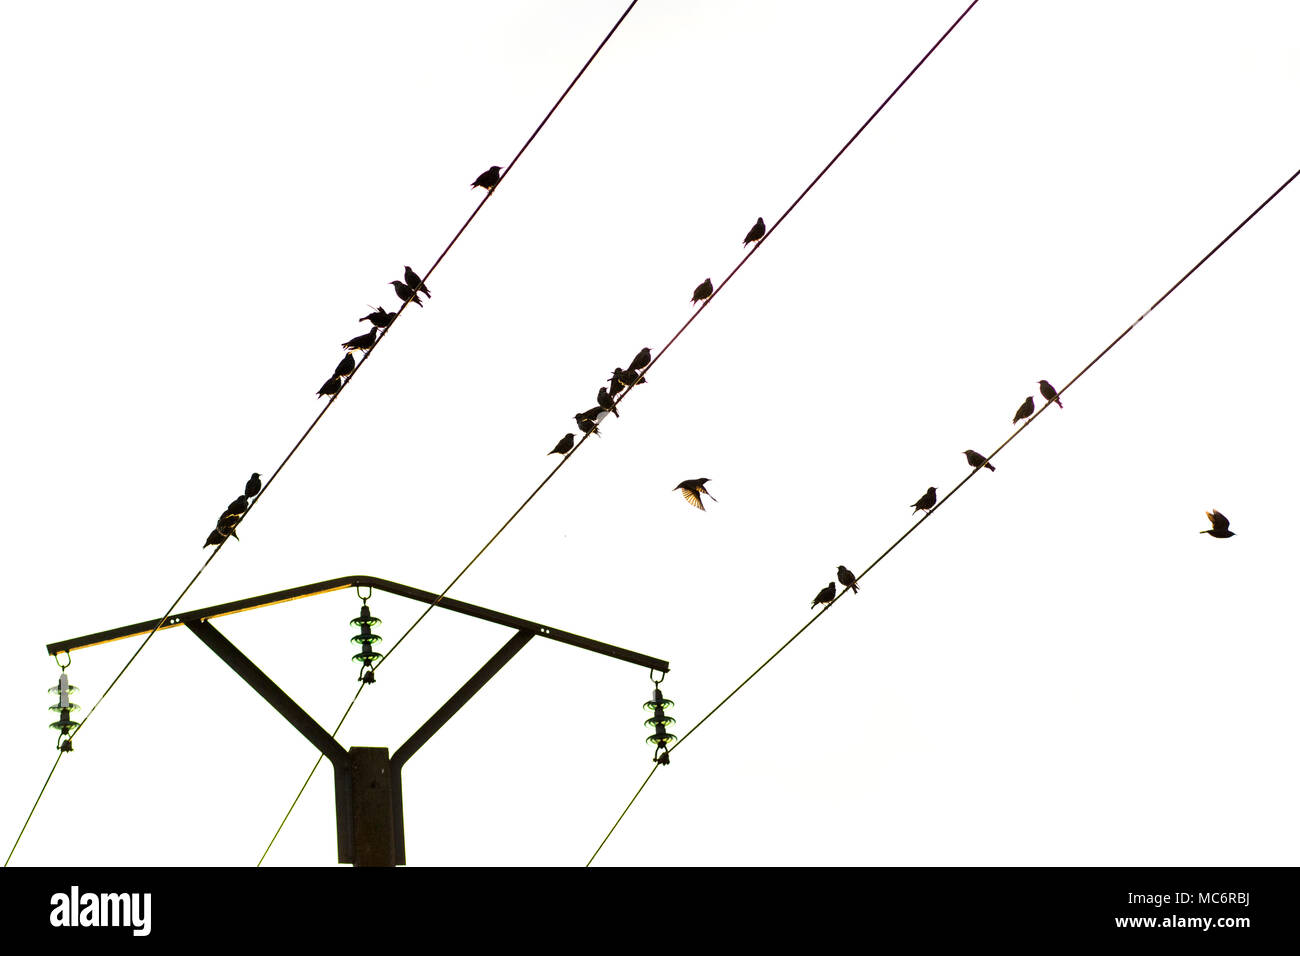 Birds on a telephone pole wire, Puy de Dome, Auvergne, France, Europe Stock Photo